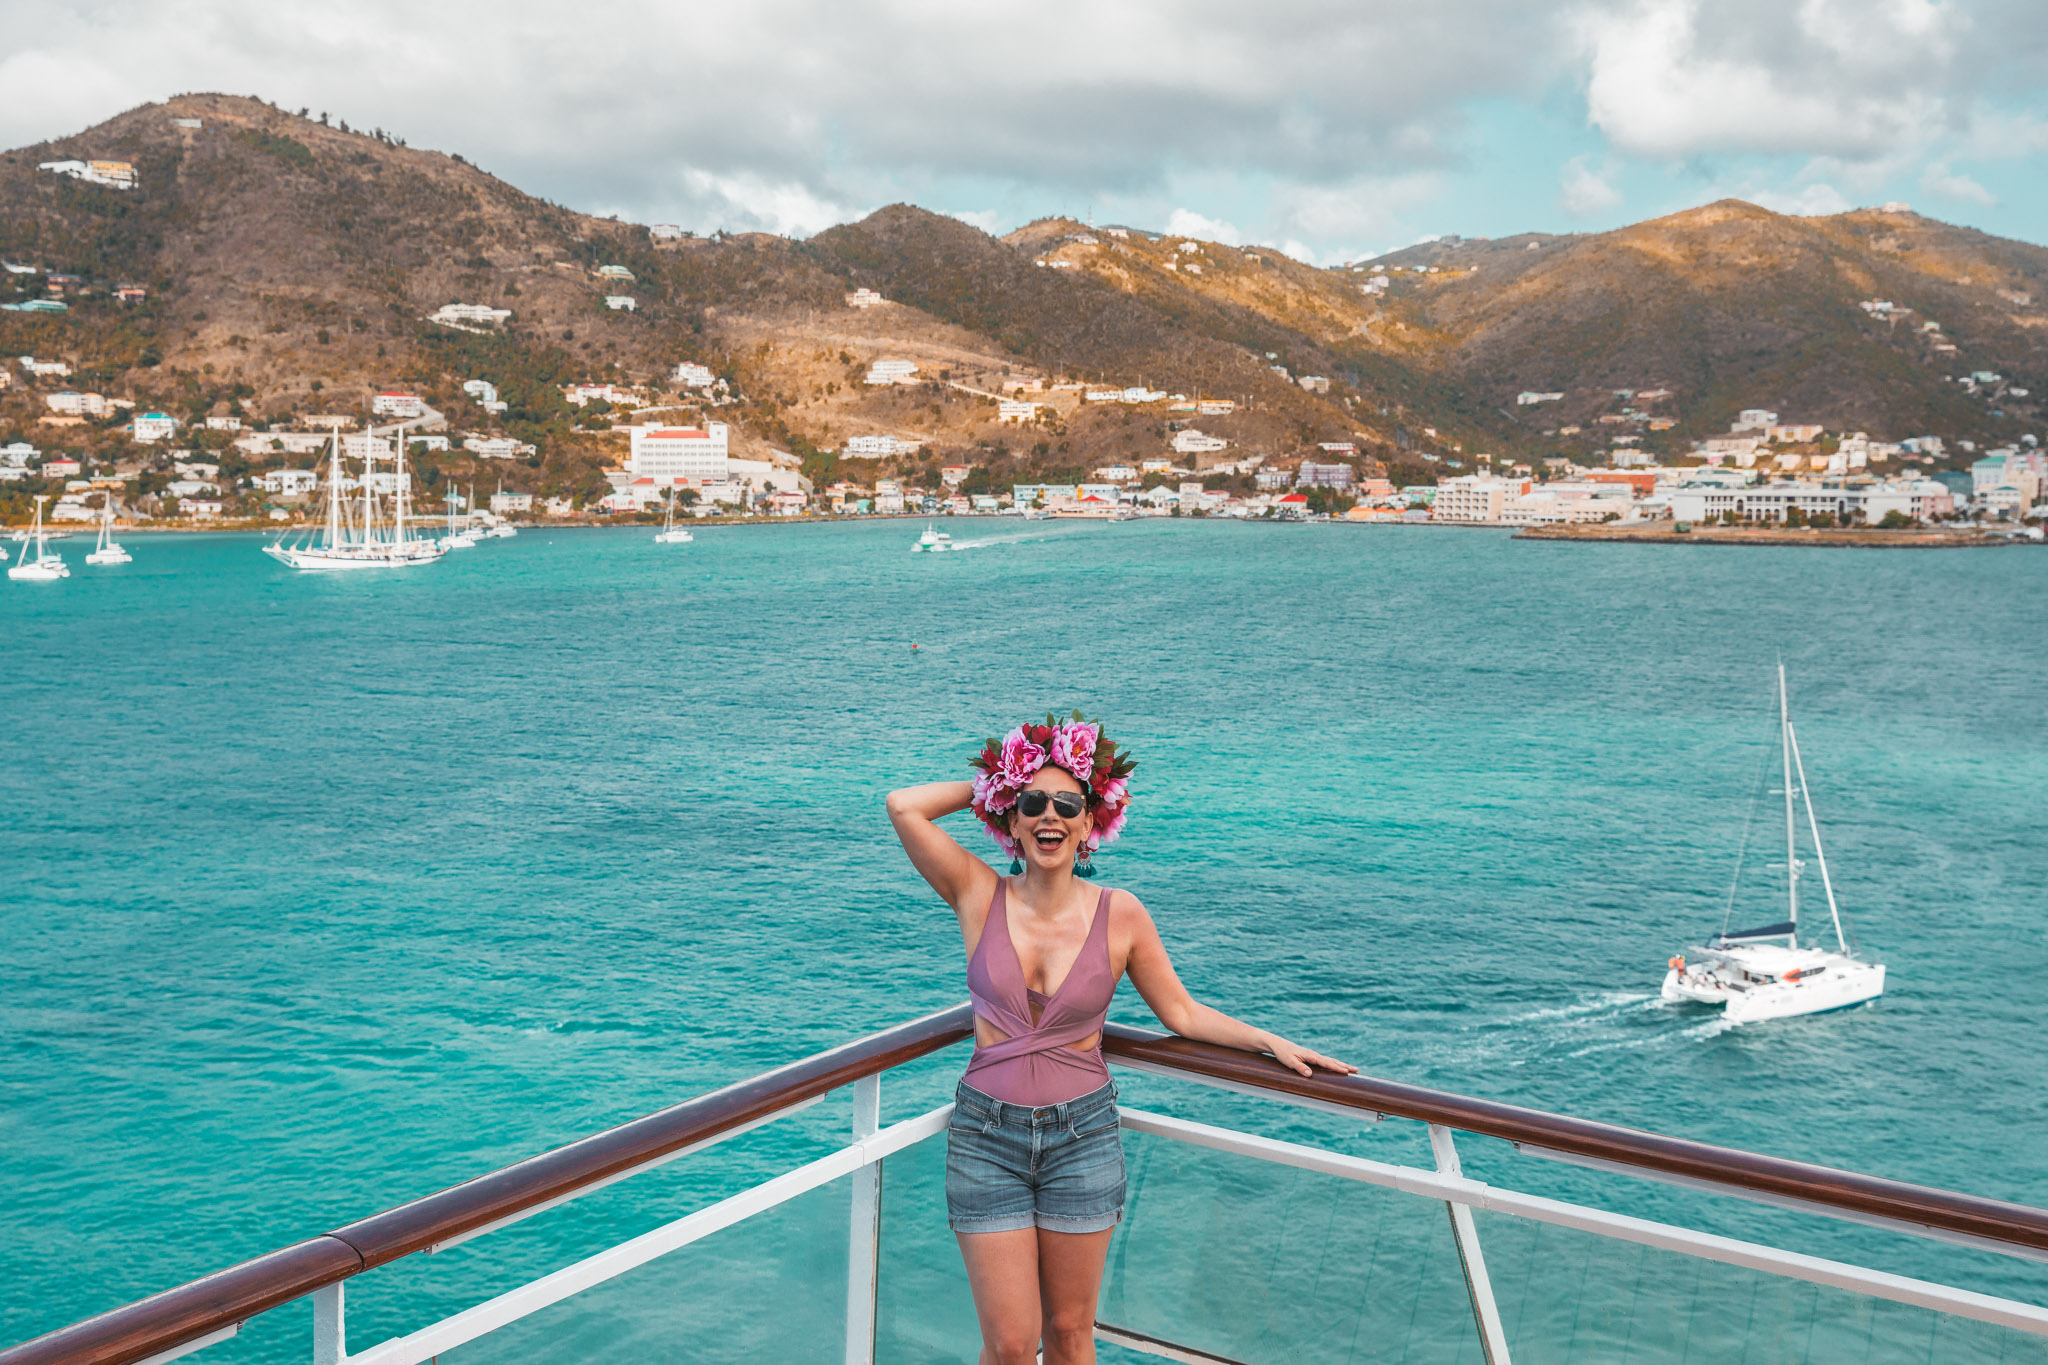 Deck views // Cruise Review: Everything You Need To Know About The Celebrity Summit